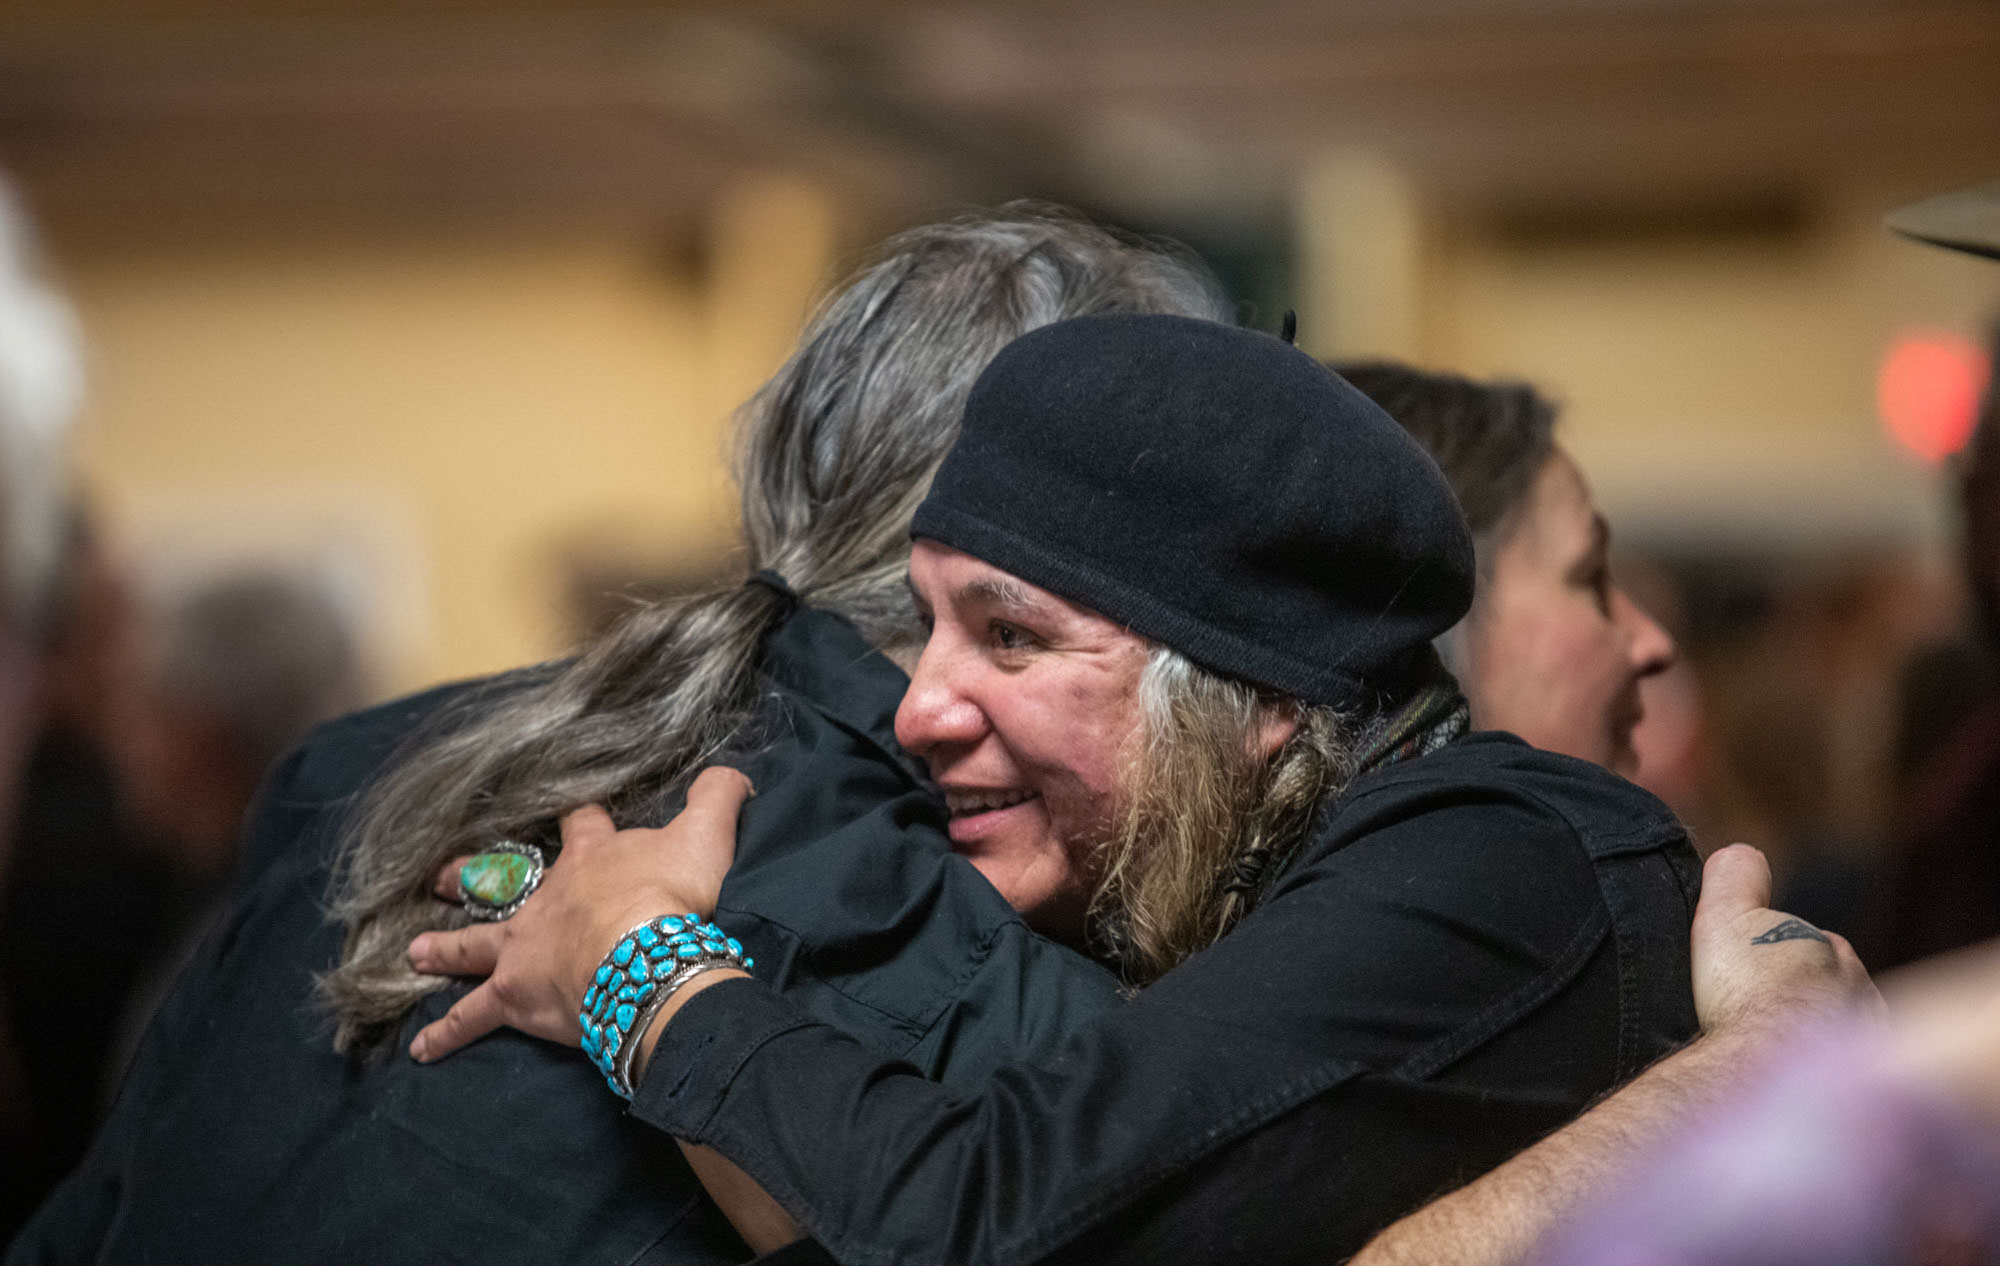 Caption: Embracing at the celebration of recognition in Great Falls, Montana, Credit: Allison Berrian